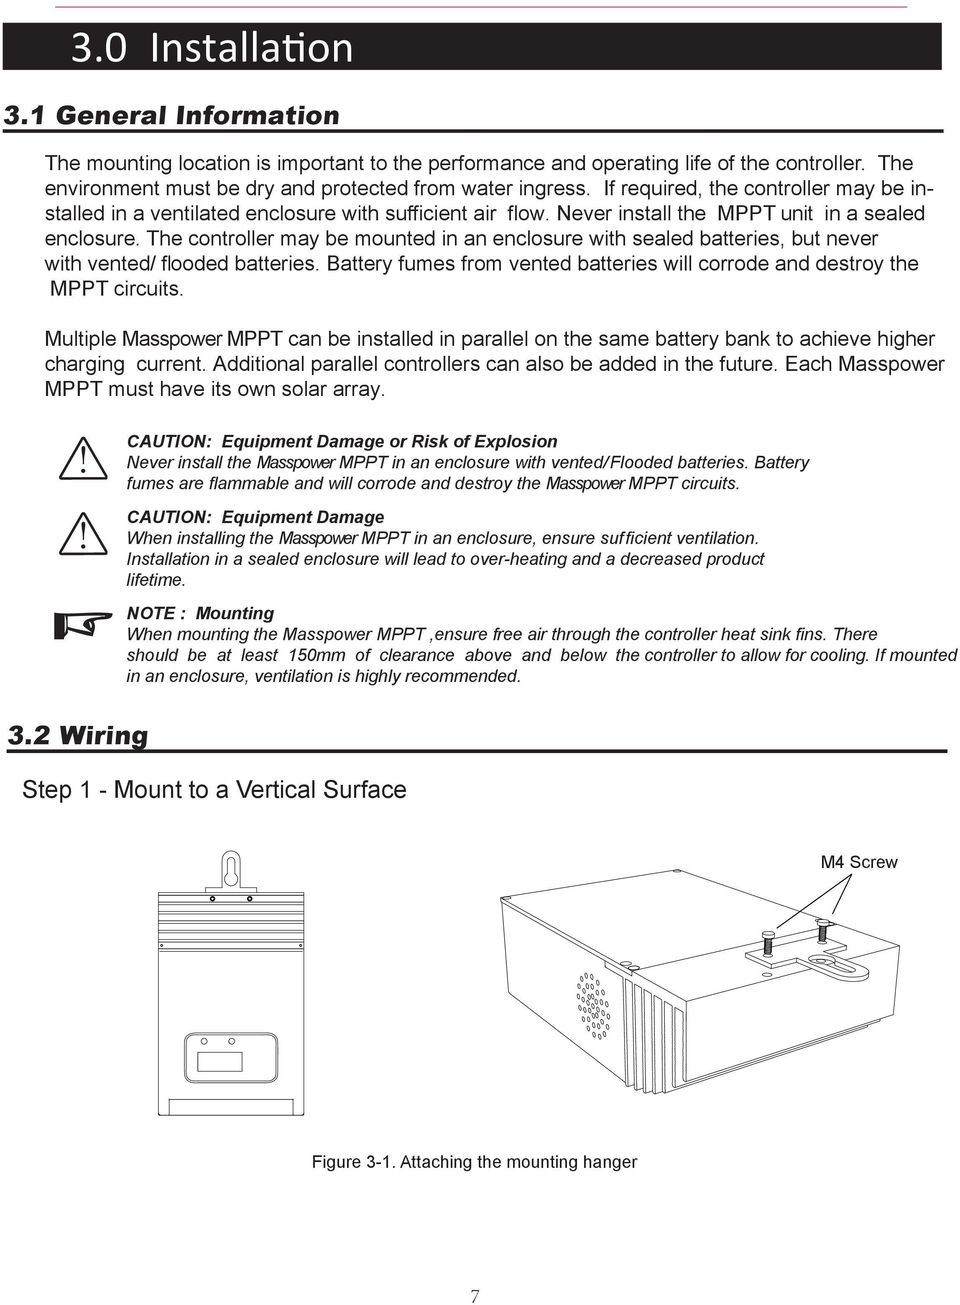 Masspower Mppt Solar Charge Controller Installation And Operation Schematic Diagram Together With Circuit The May Be Mounted In An Enclosure Sealed Batteries But Never Vented